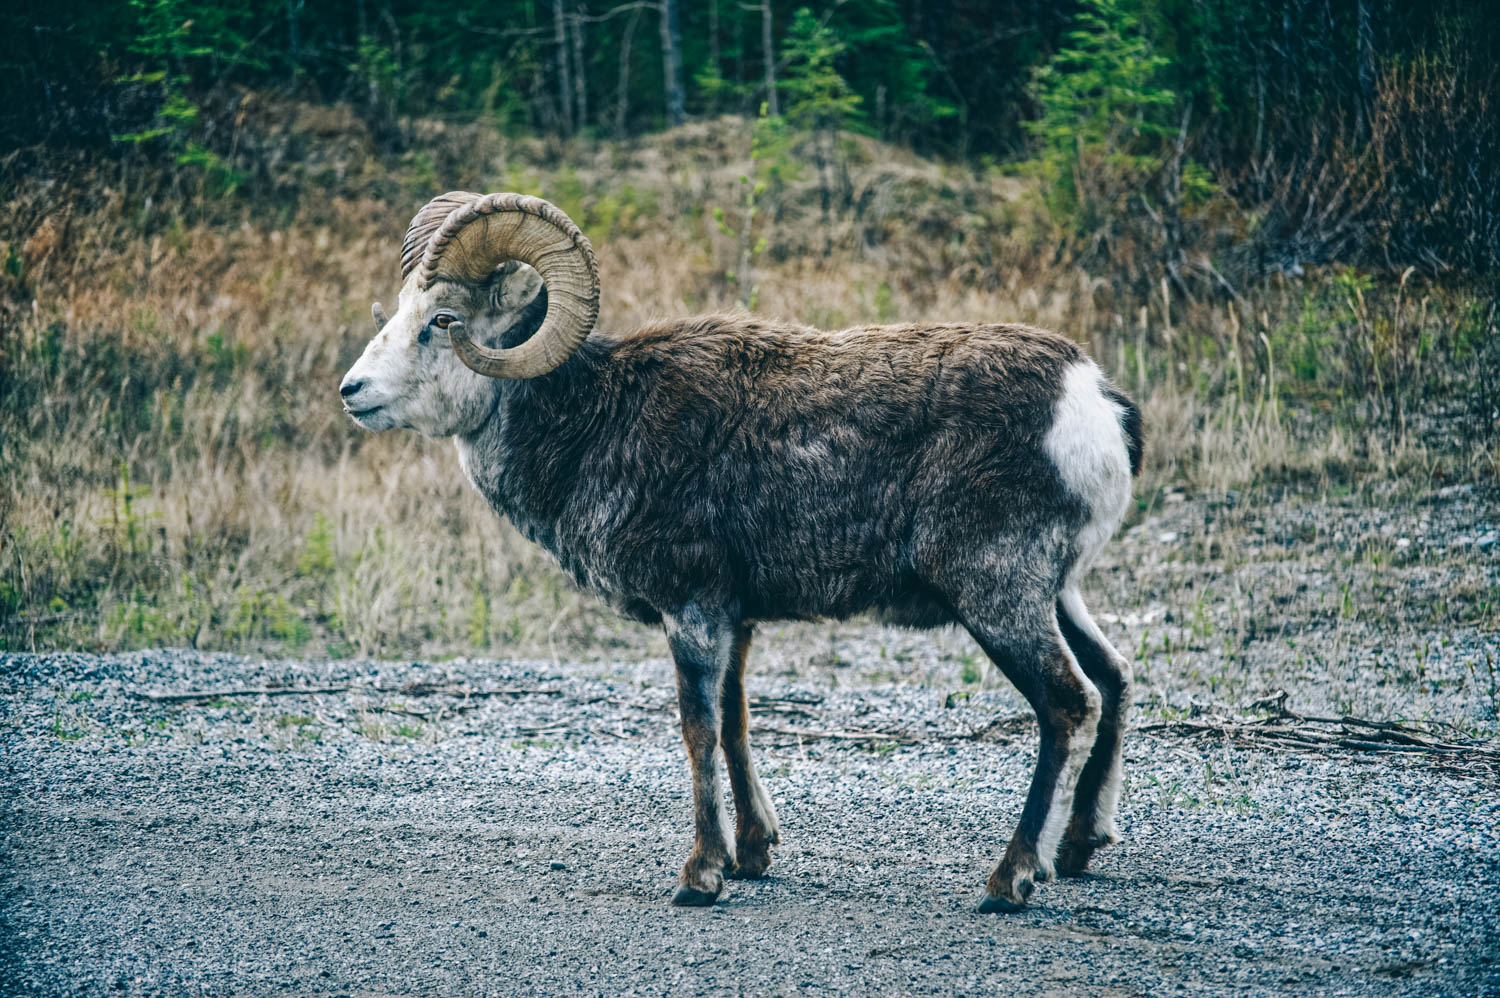 As usual, we were treated to a real show on our way North. Bighorn sheep, mountain goats, a wolf, cariboos, moose, lots of bears and even brand new bison babies...